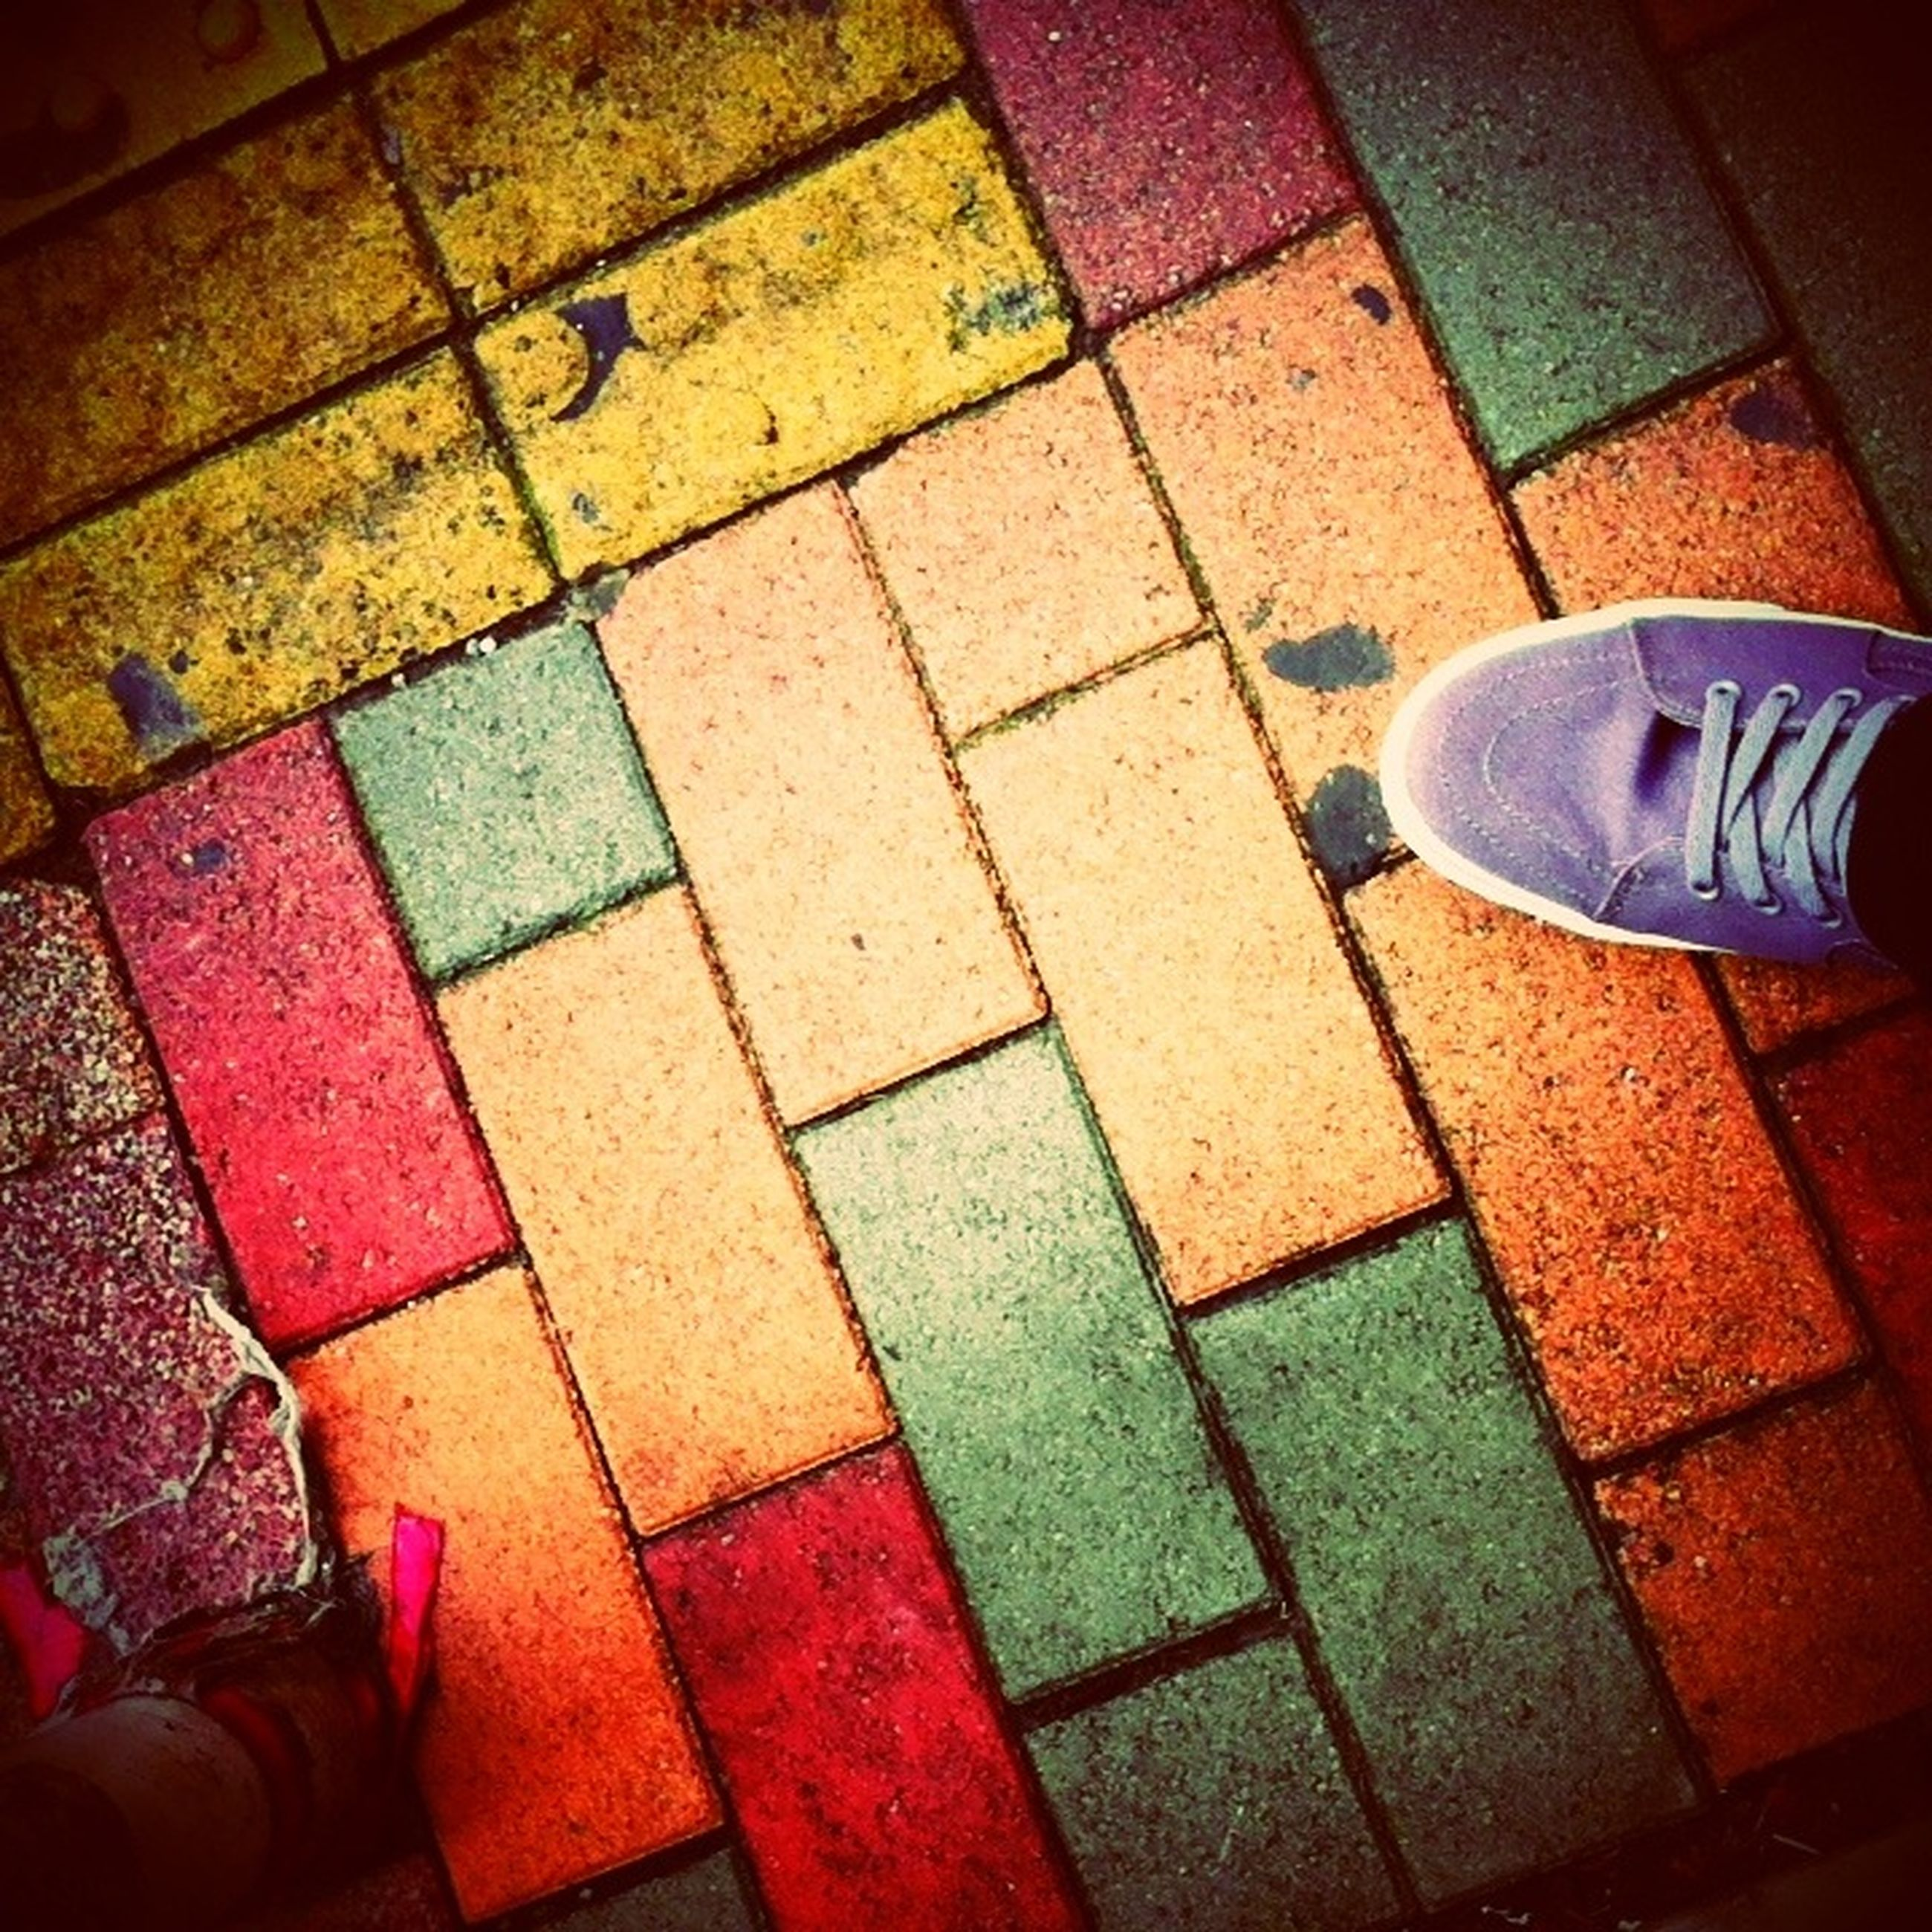 high angle view, tiled floor, low section, flooring, paving stone, pattern, cobblestone, shoe, indoors, person, floor, tile, footpath, red, pavement, side by side, directly above, standing, empty, shadow